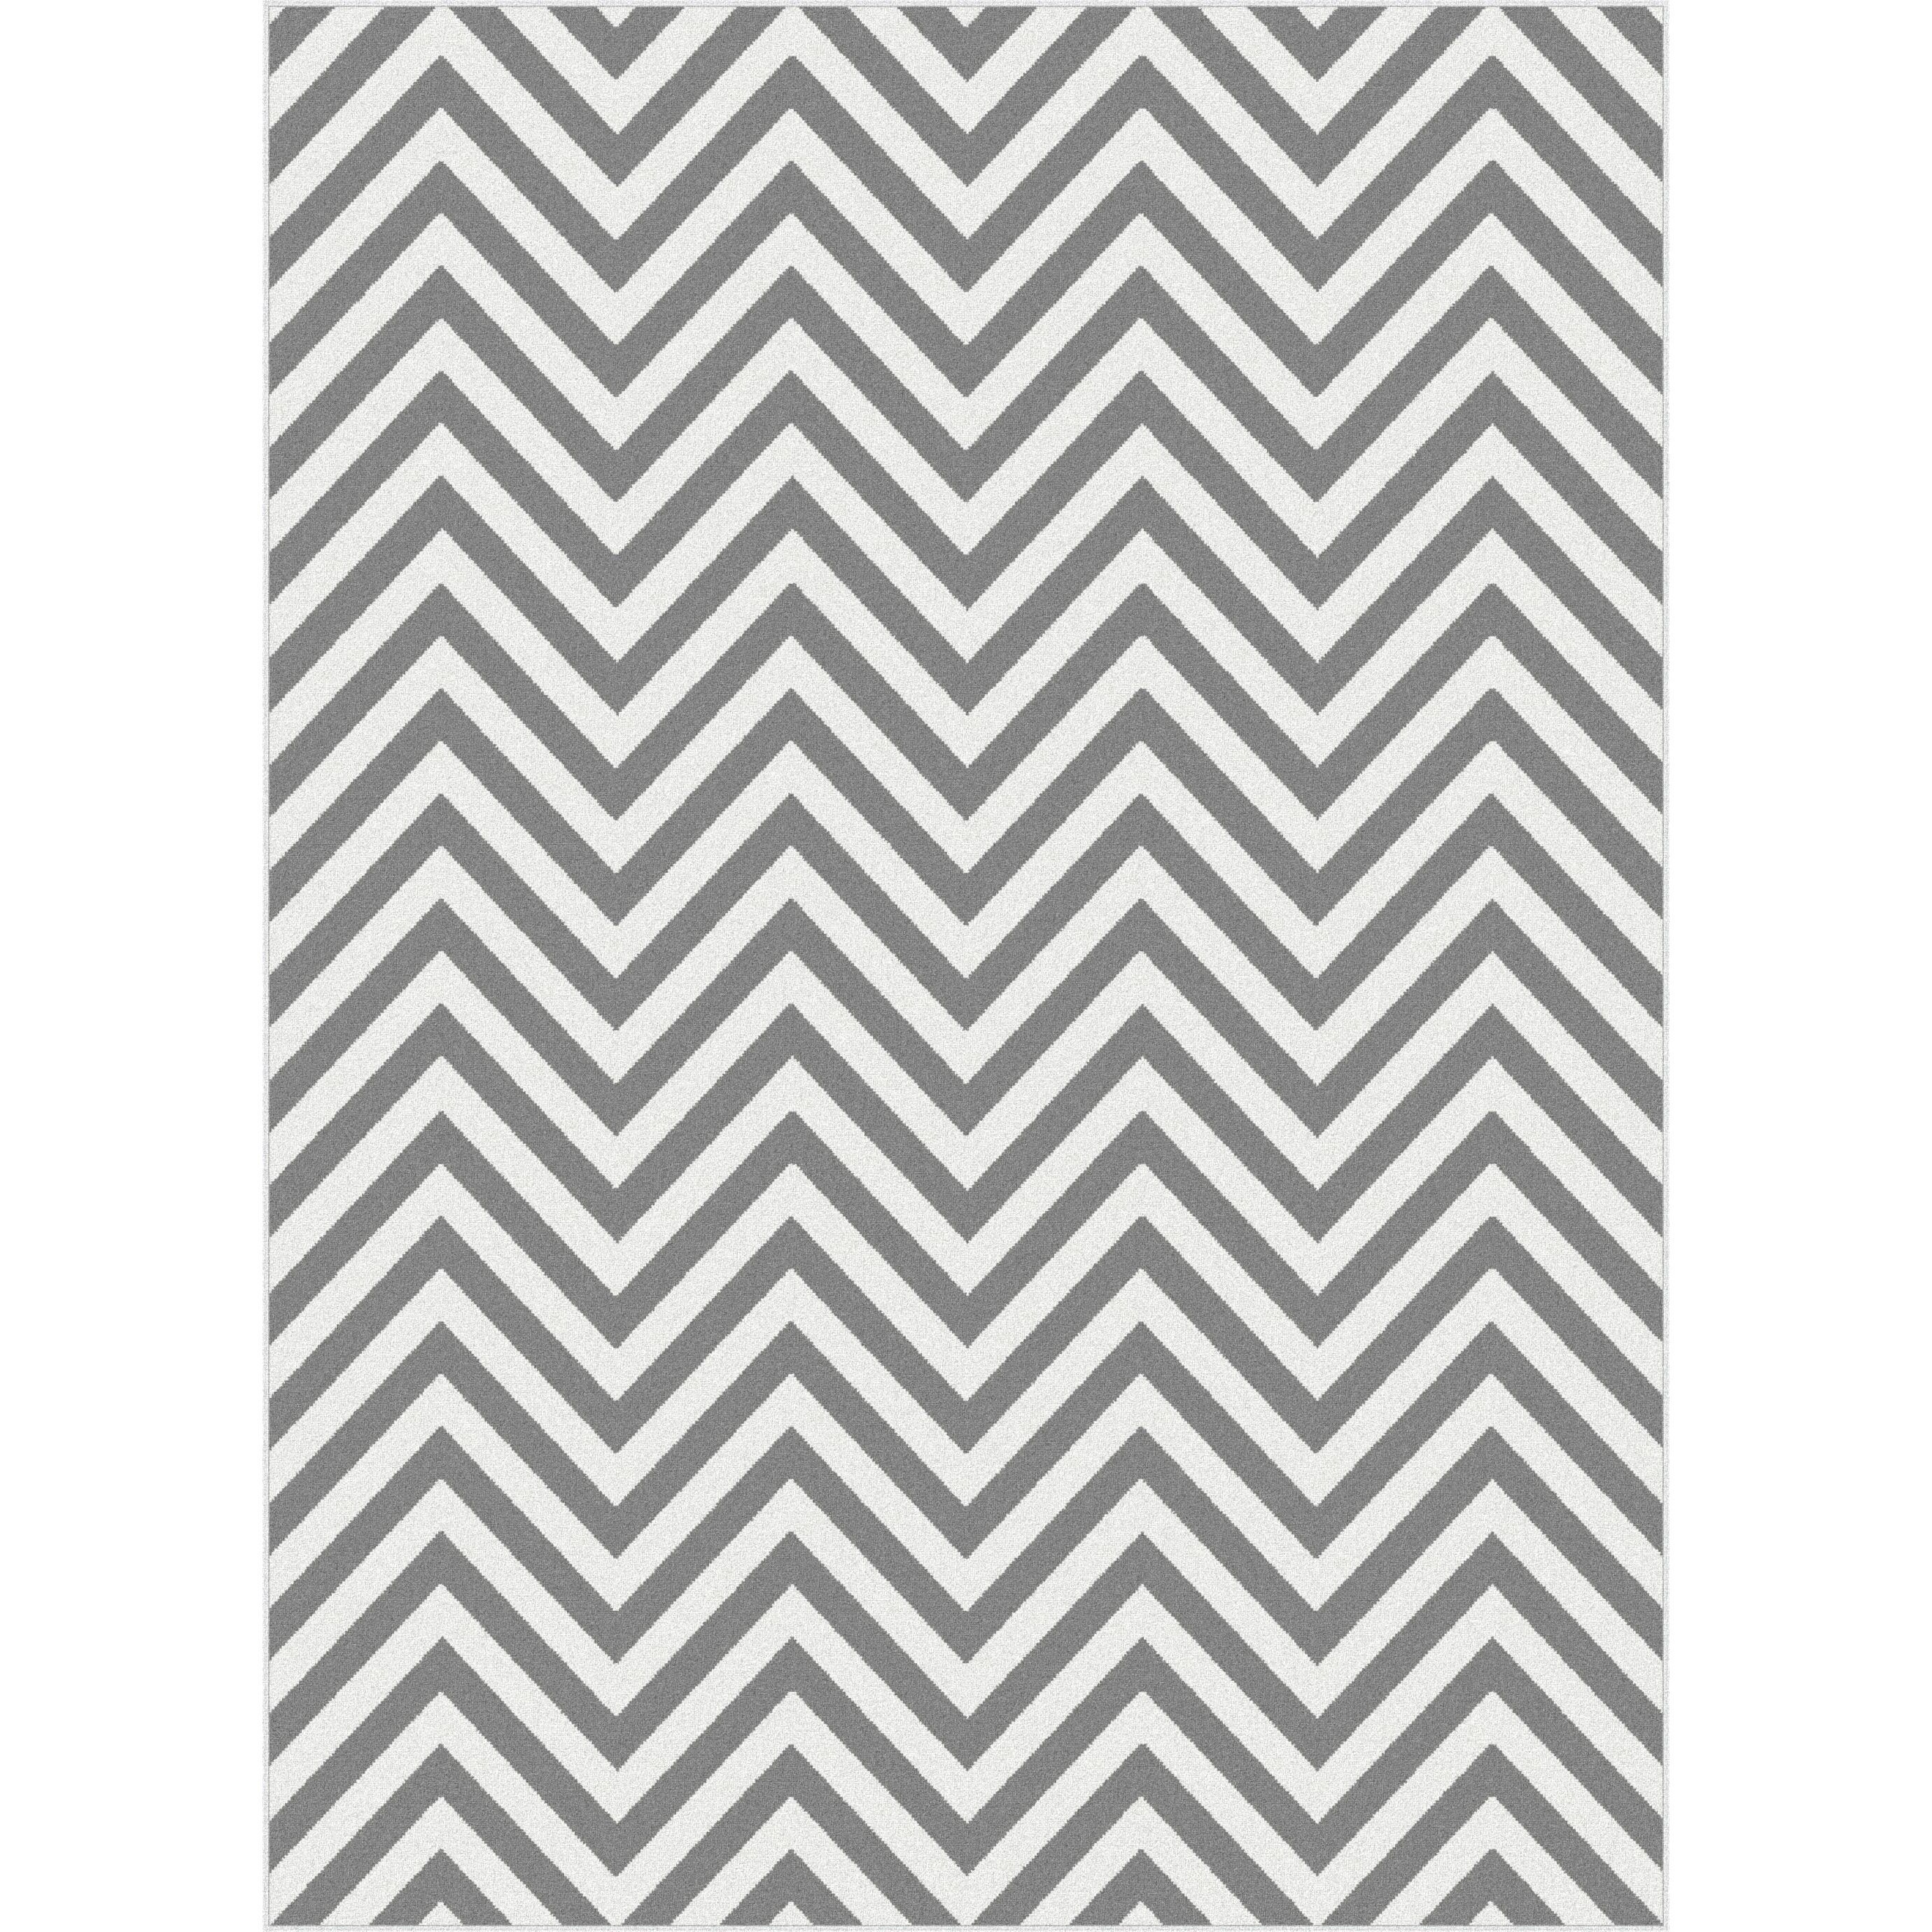 Online Shopping Bedding Furniture Electronics Jewelry Clothing More Grey Chevron Rugs Chevron Rugs Area Rugs